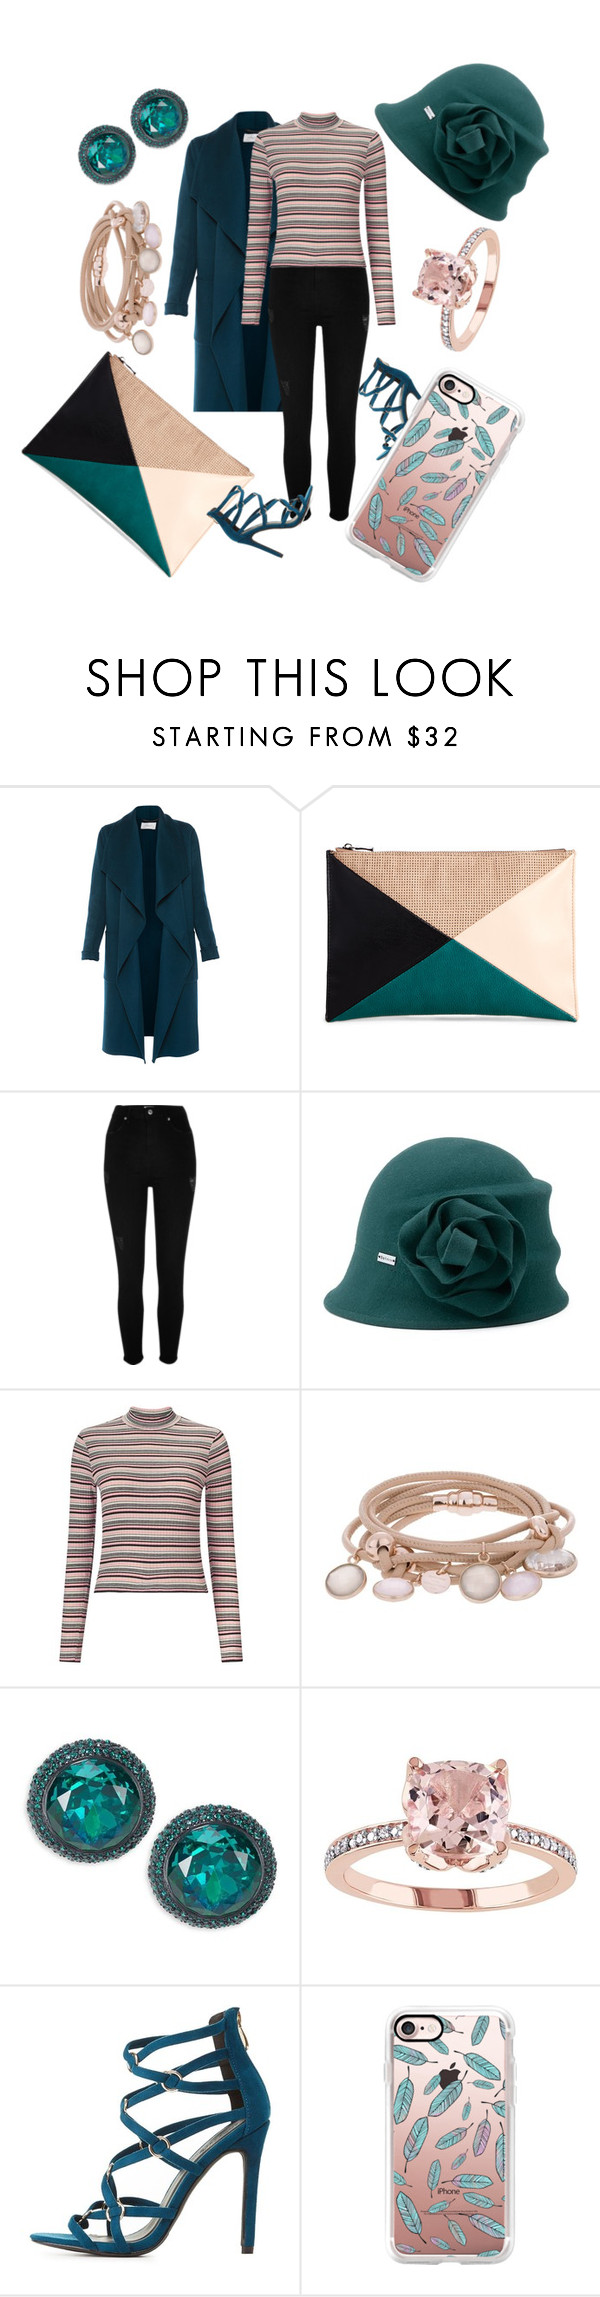 """""""Teal in Style"""" by niahedstrom ❤ liked on Polyvore featuring L.K.Bennett, Sole Society, River Island, Betmar, Miss Selfridge, Marjana von Berlepsch, Kate Spade, Charlotte Russe and Casetify"""